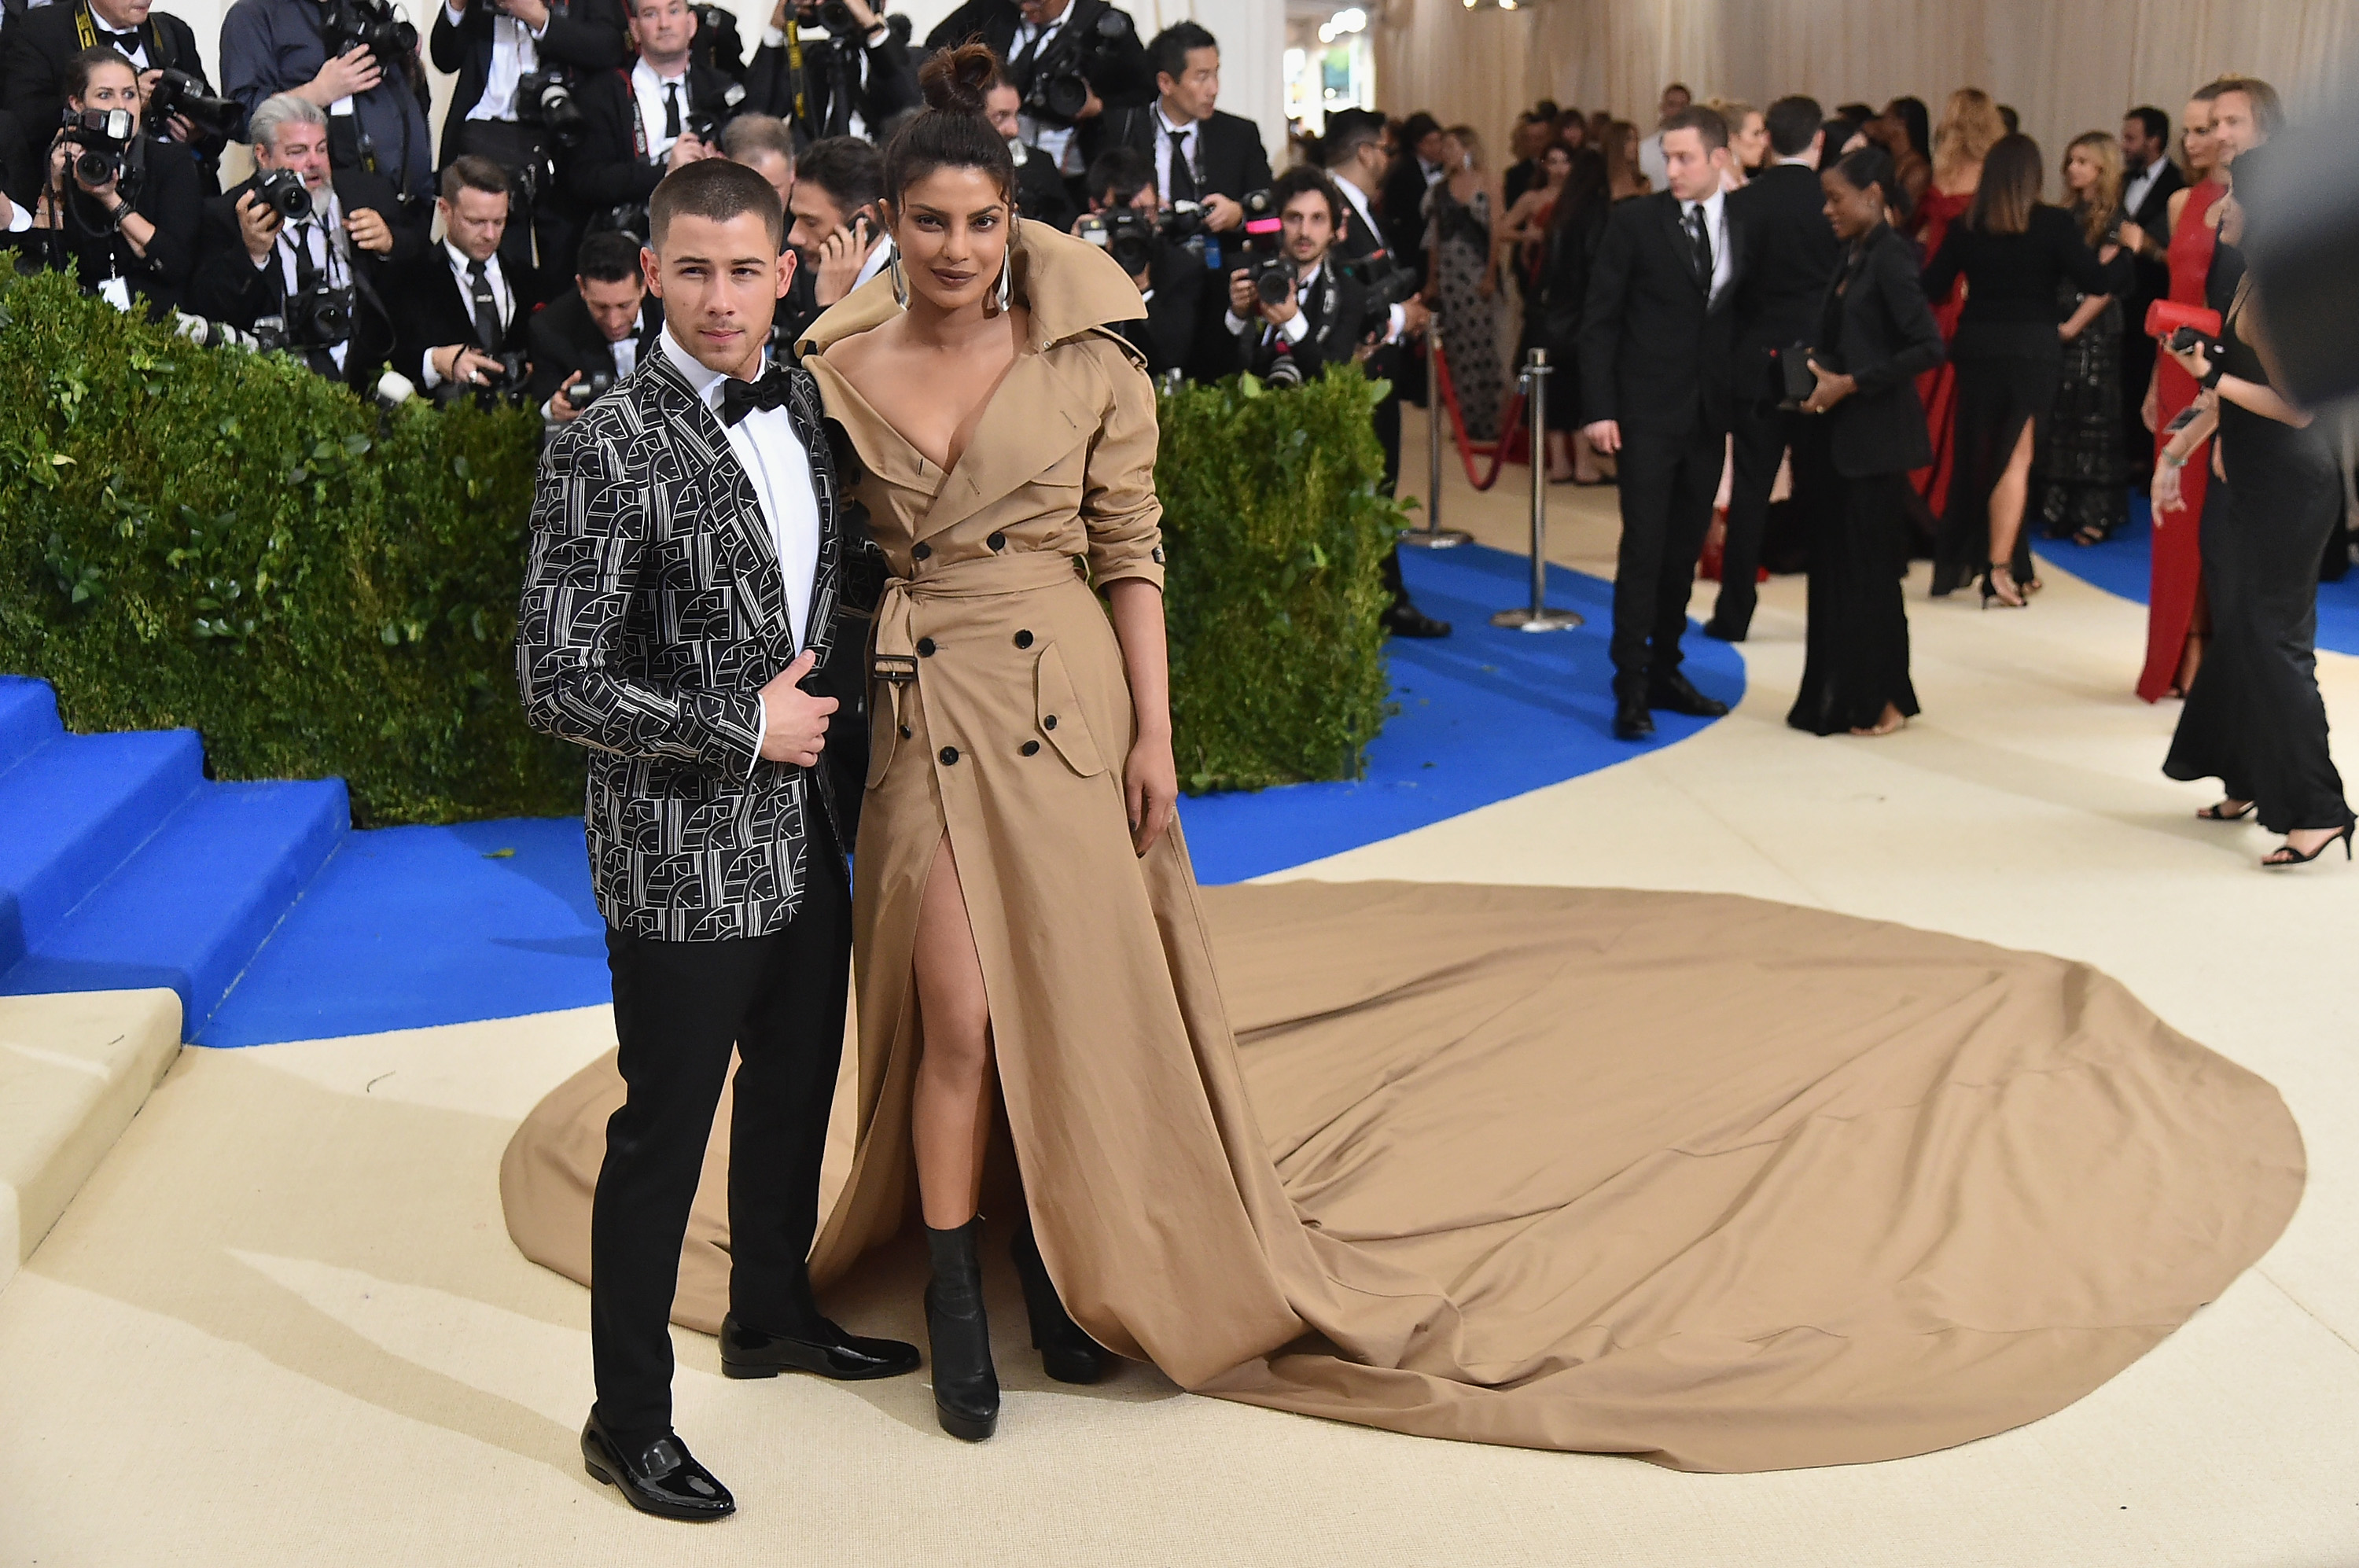 Priyanka Chopra and Nick Jonas criticised by PETA for animal abuse